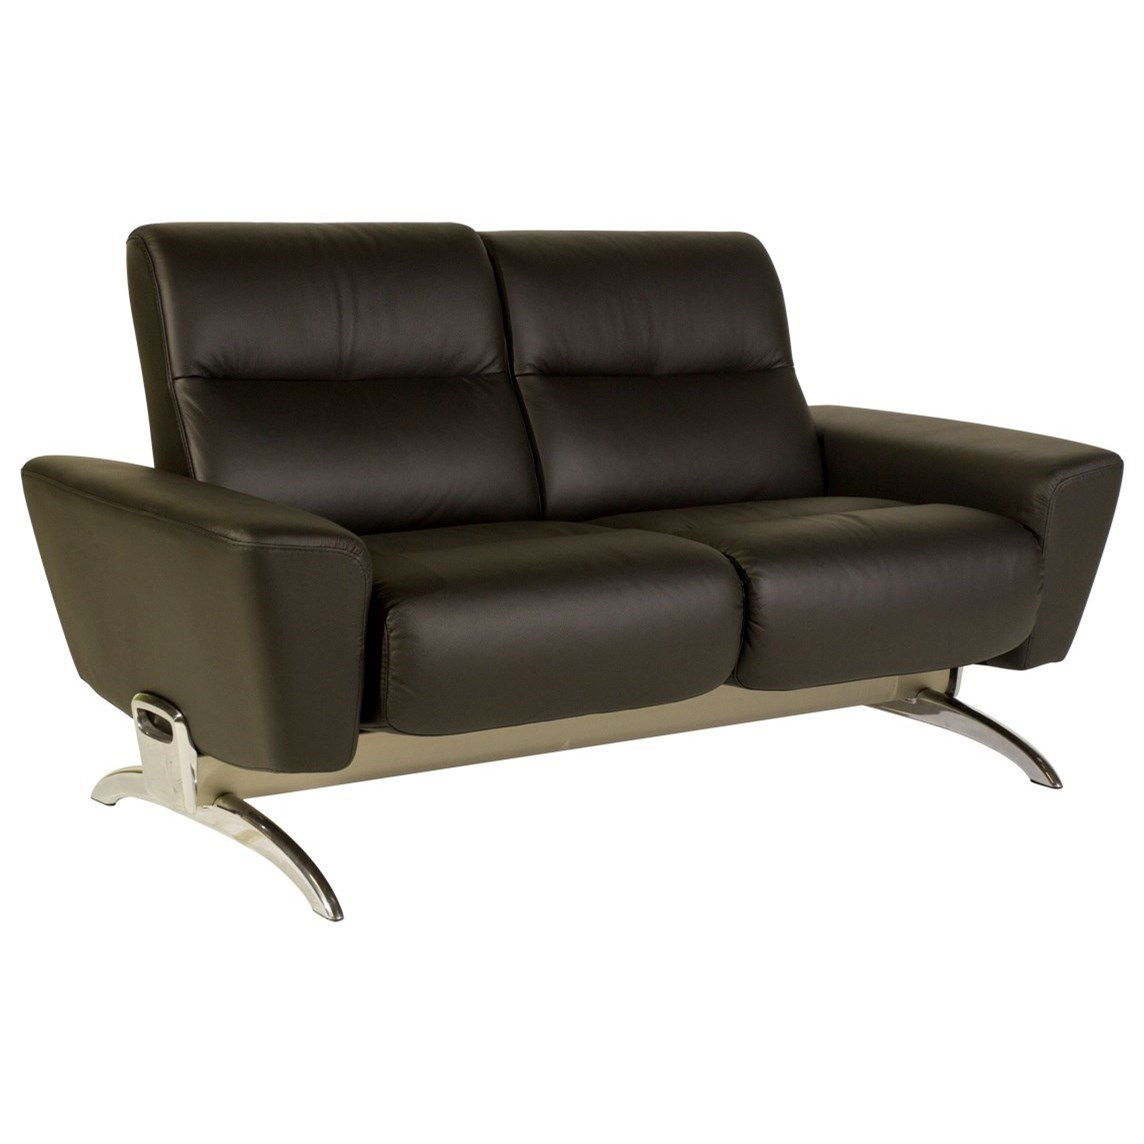 Stressless Sessel Metro High Back Stressless You Finest Brown Stressless Reno L With Stressless You